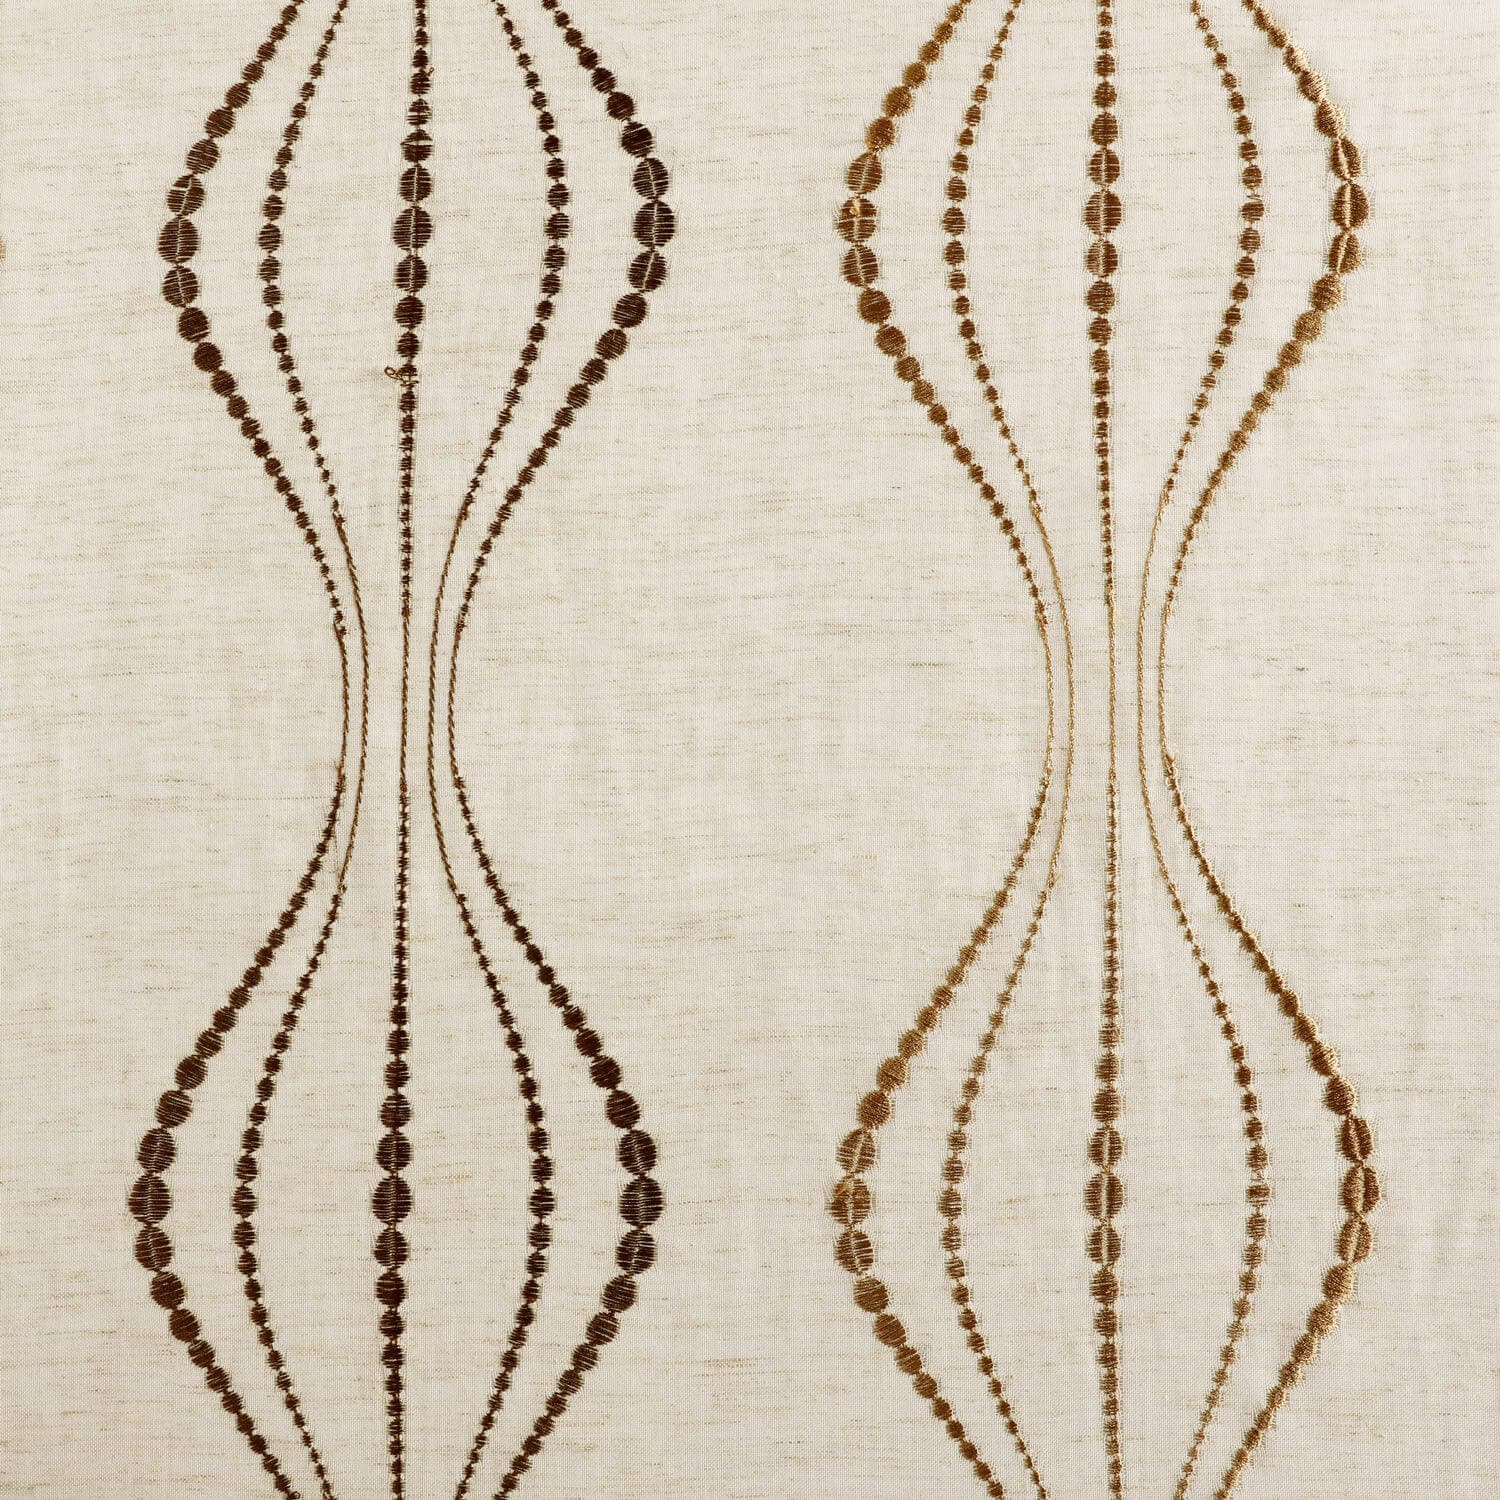 Suez Bronze Embroidered Faux Linen Sheer Fabric